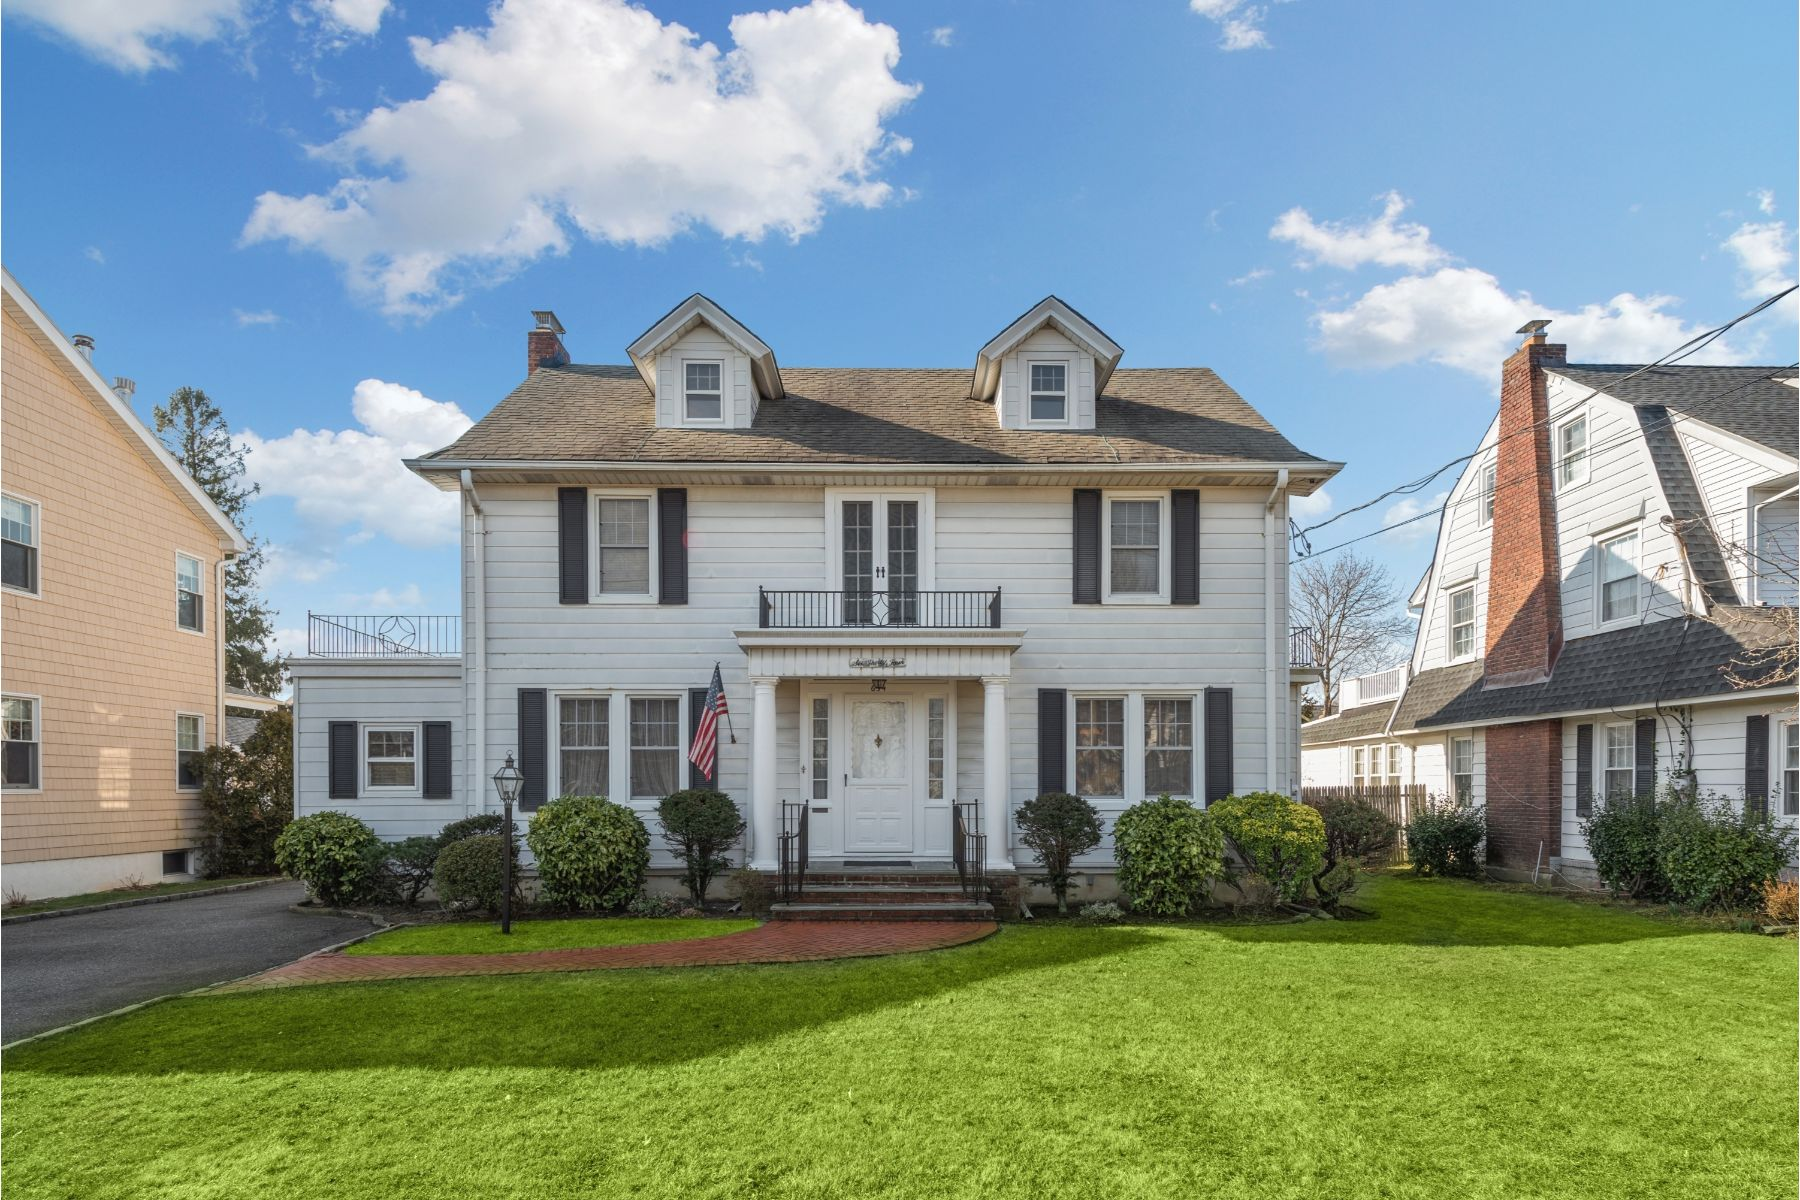 Single Family Homes for Active at Lynbrook 634 Scranton Avenue Lynbrook, New York 11563 United States